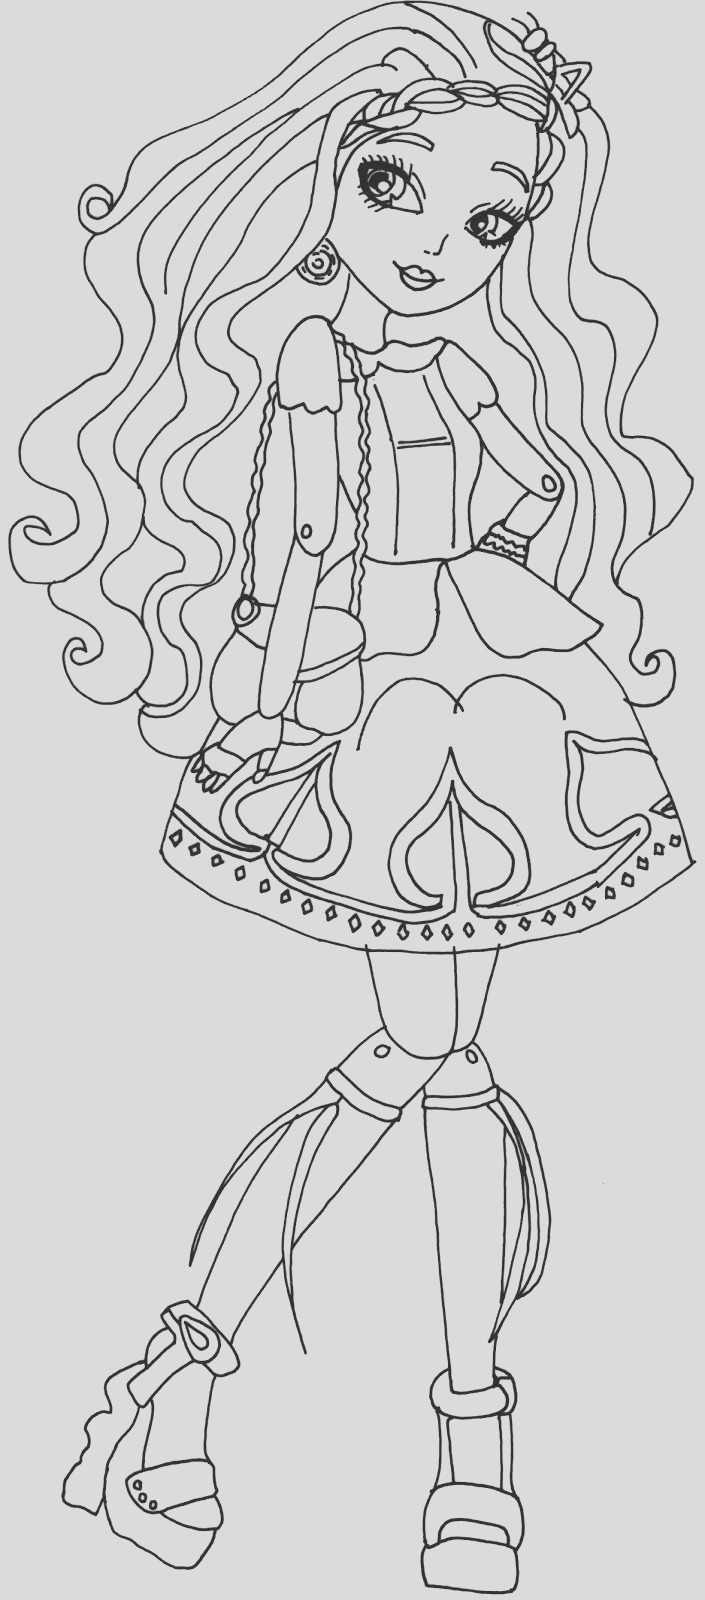 royals coloring pages